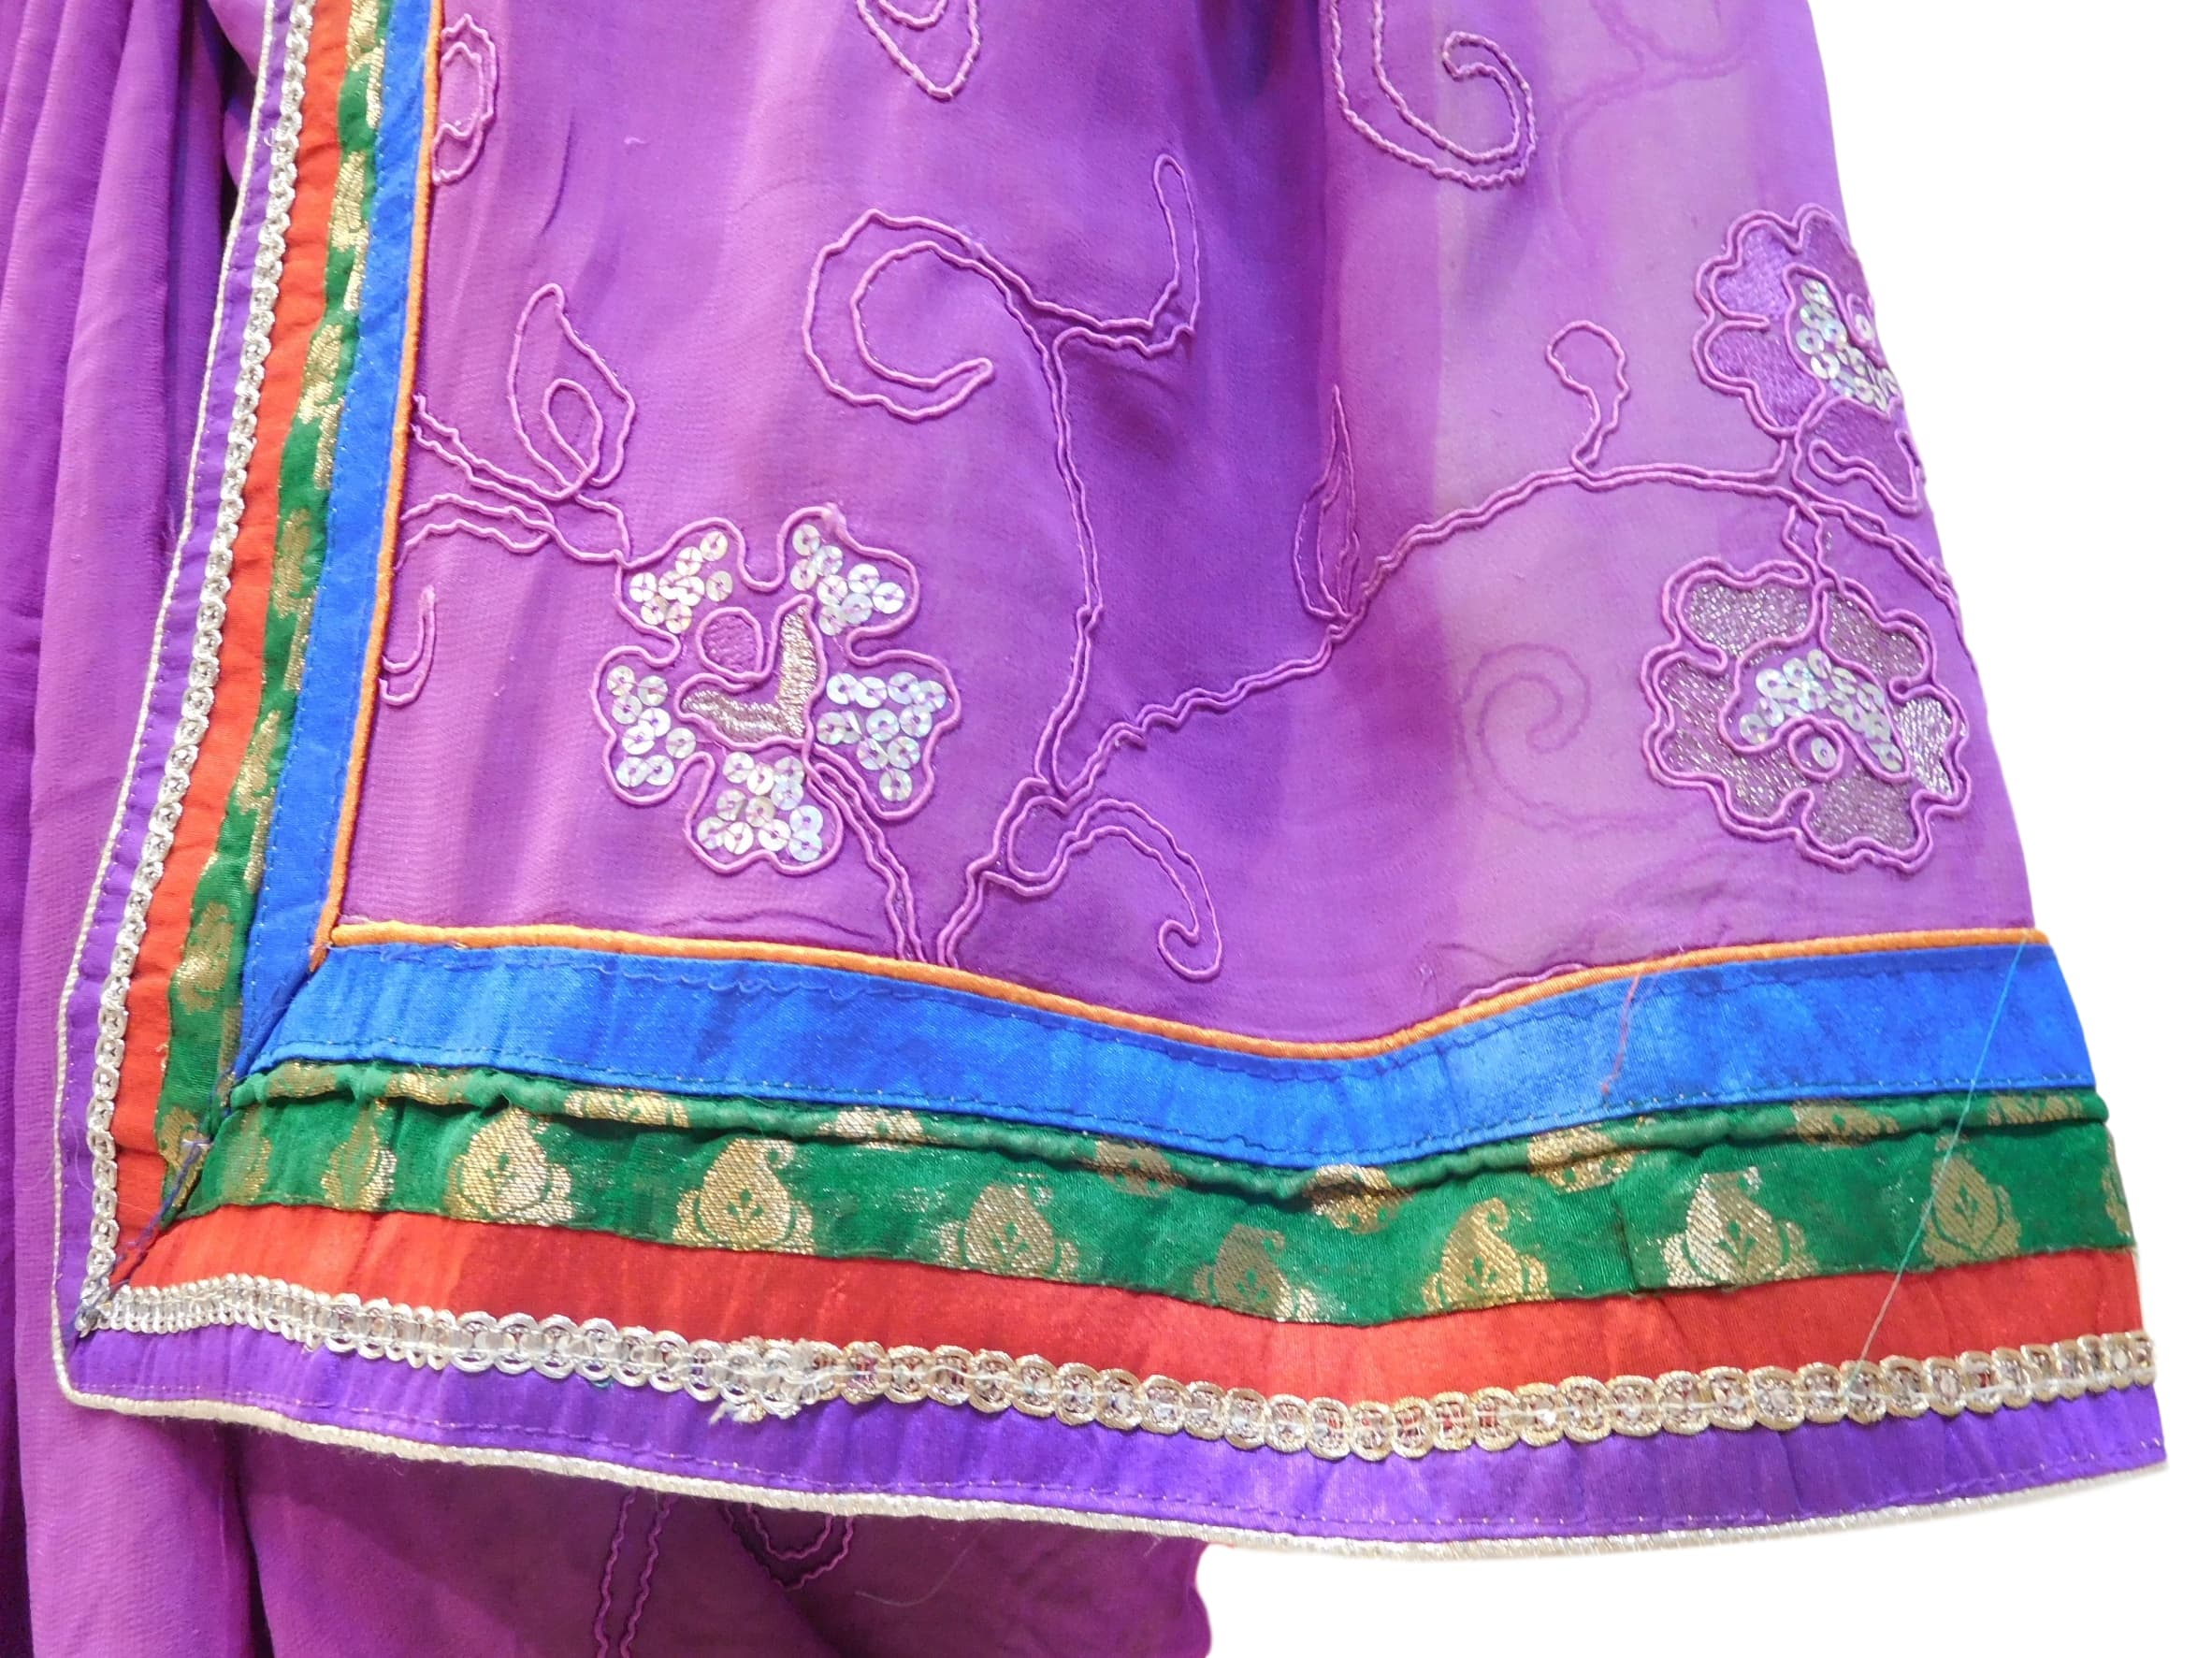 Violet Designer Georgette (Viscos) Hand Embroidery Zari Sequence Thread Work Saree Sari